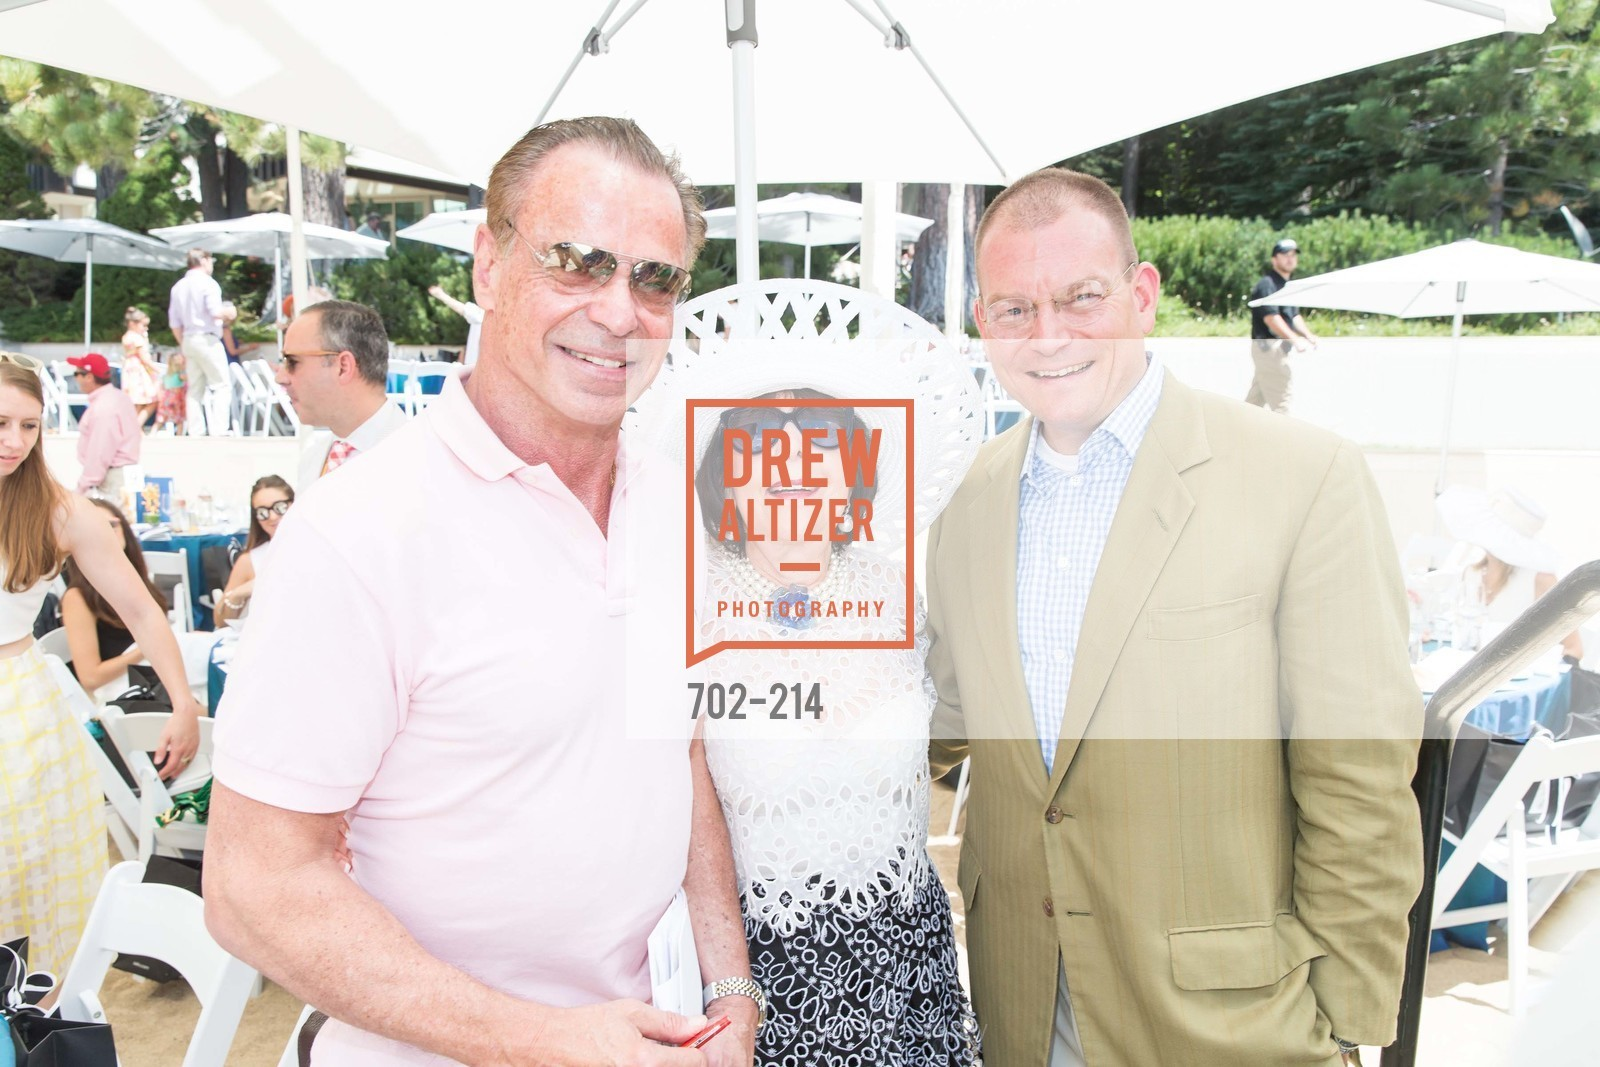 Boaz Mazor, Tyril Seligman, Alex Bolen, Saks Fifth Avenue and The League to Save Lake Tahoe Present Fashion on the Lake, Private Residence, August 1st, 2015,Drew Altizer, Drew Altizer Photography, full-service agency, private events, San Francisco photographer, photographer california